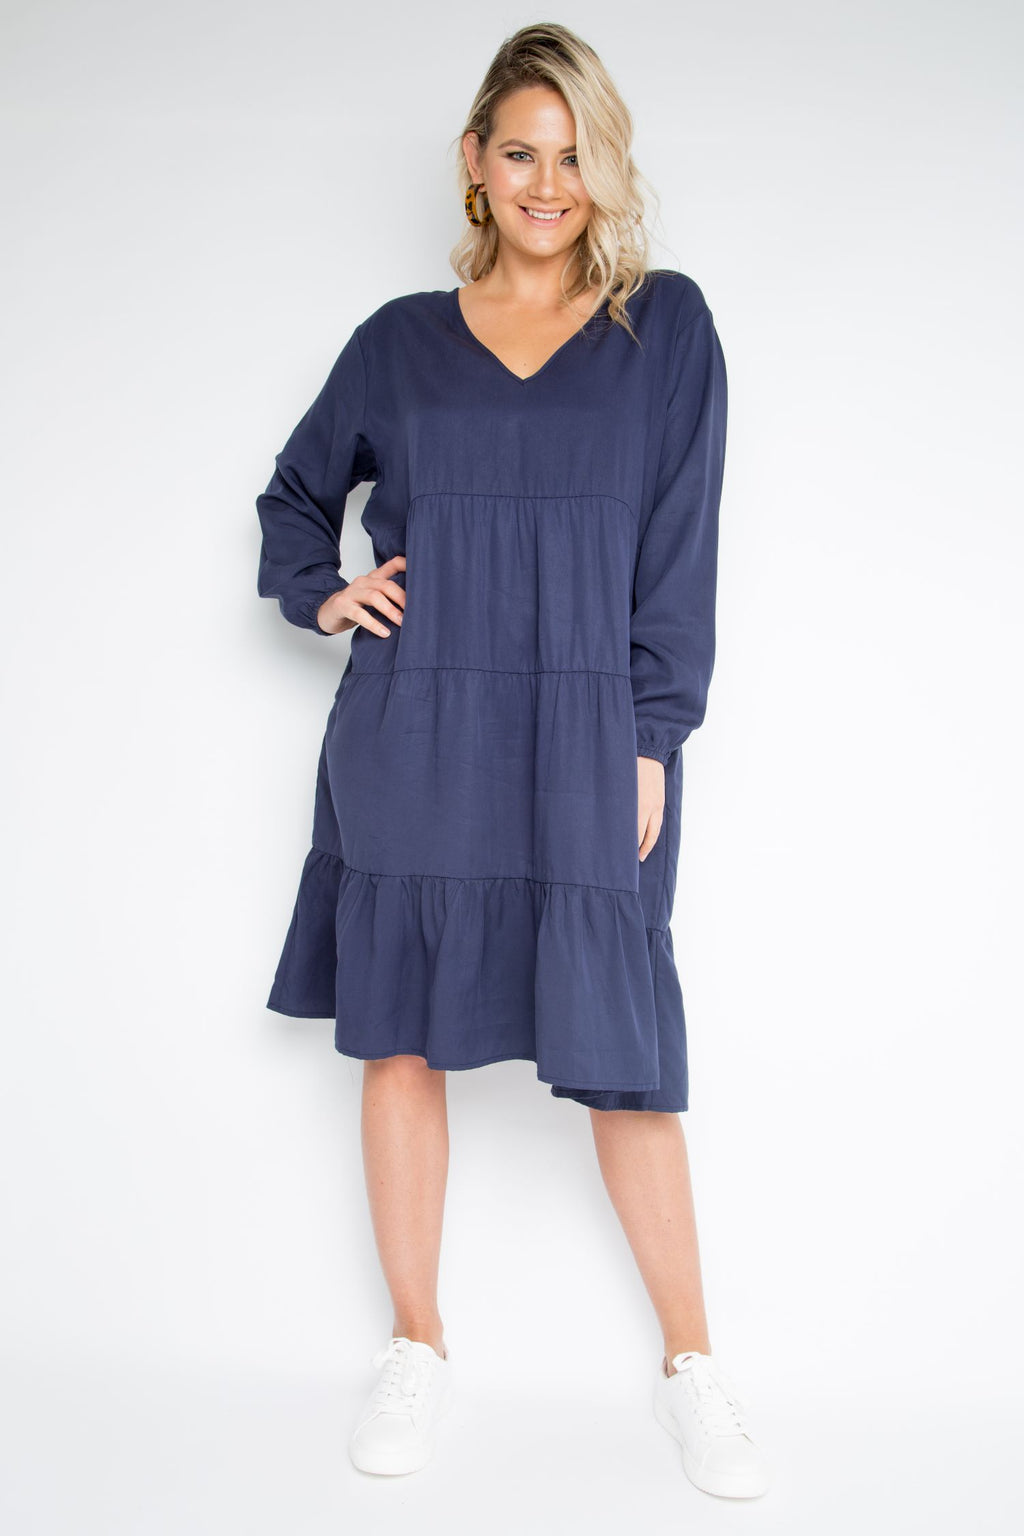 Chic Dress in Navy (Tencel)